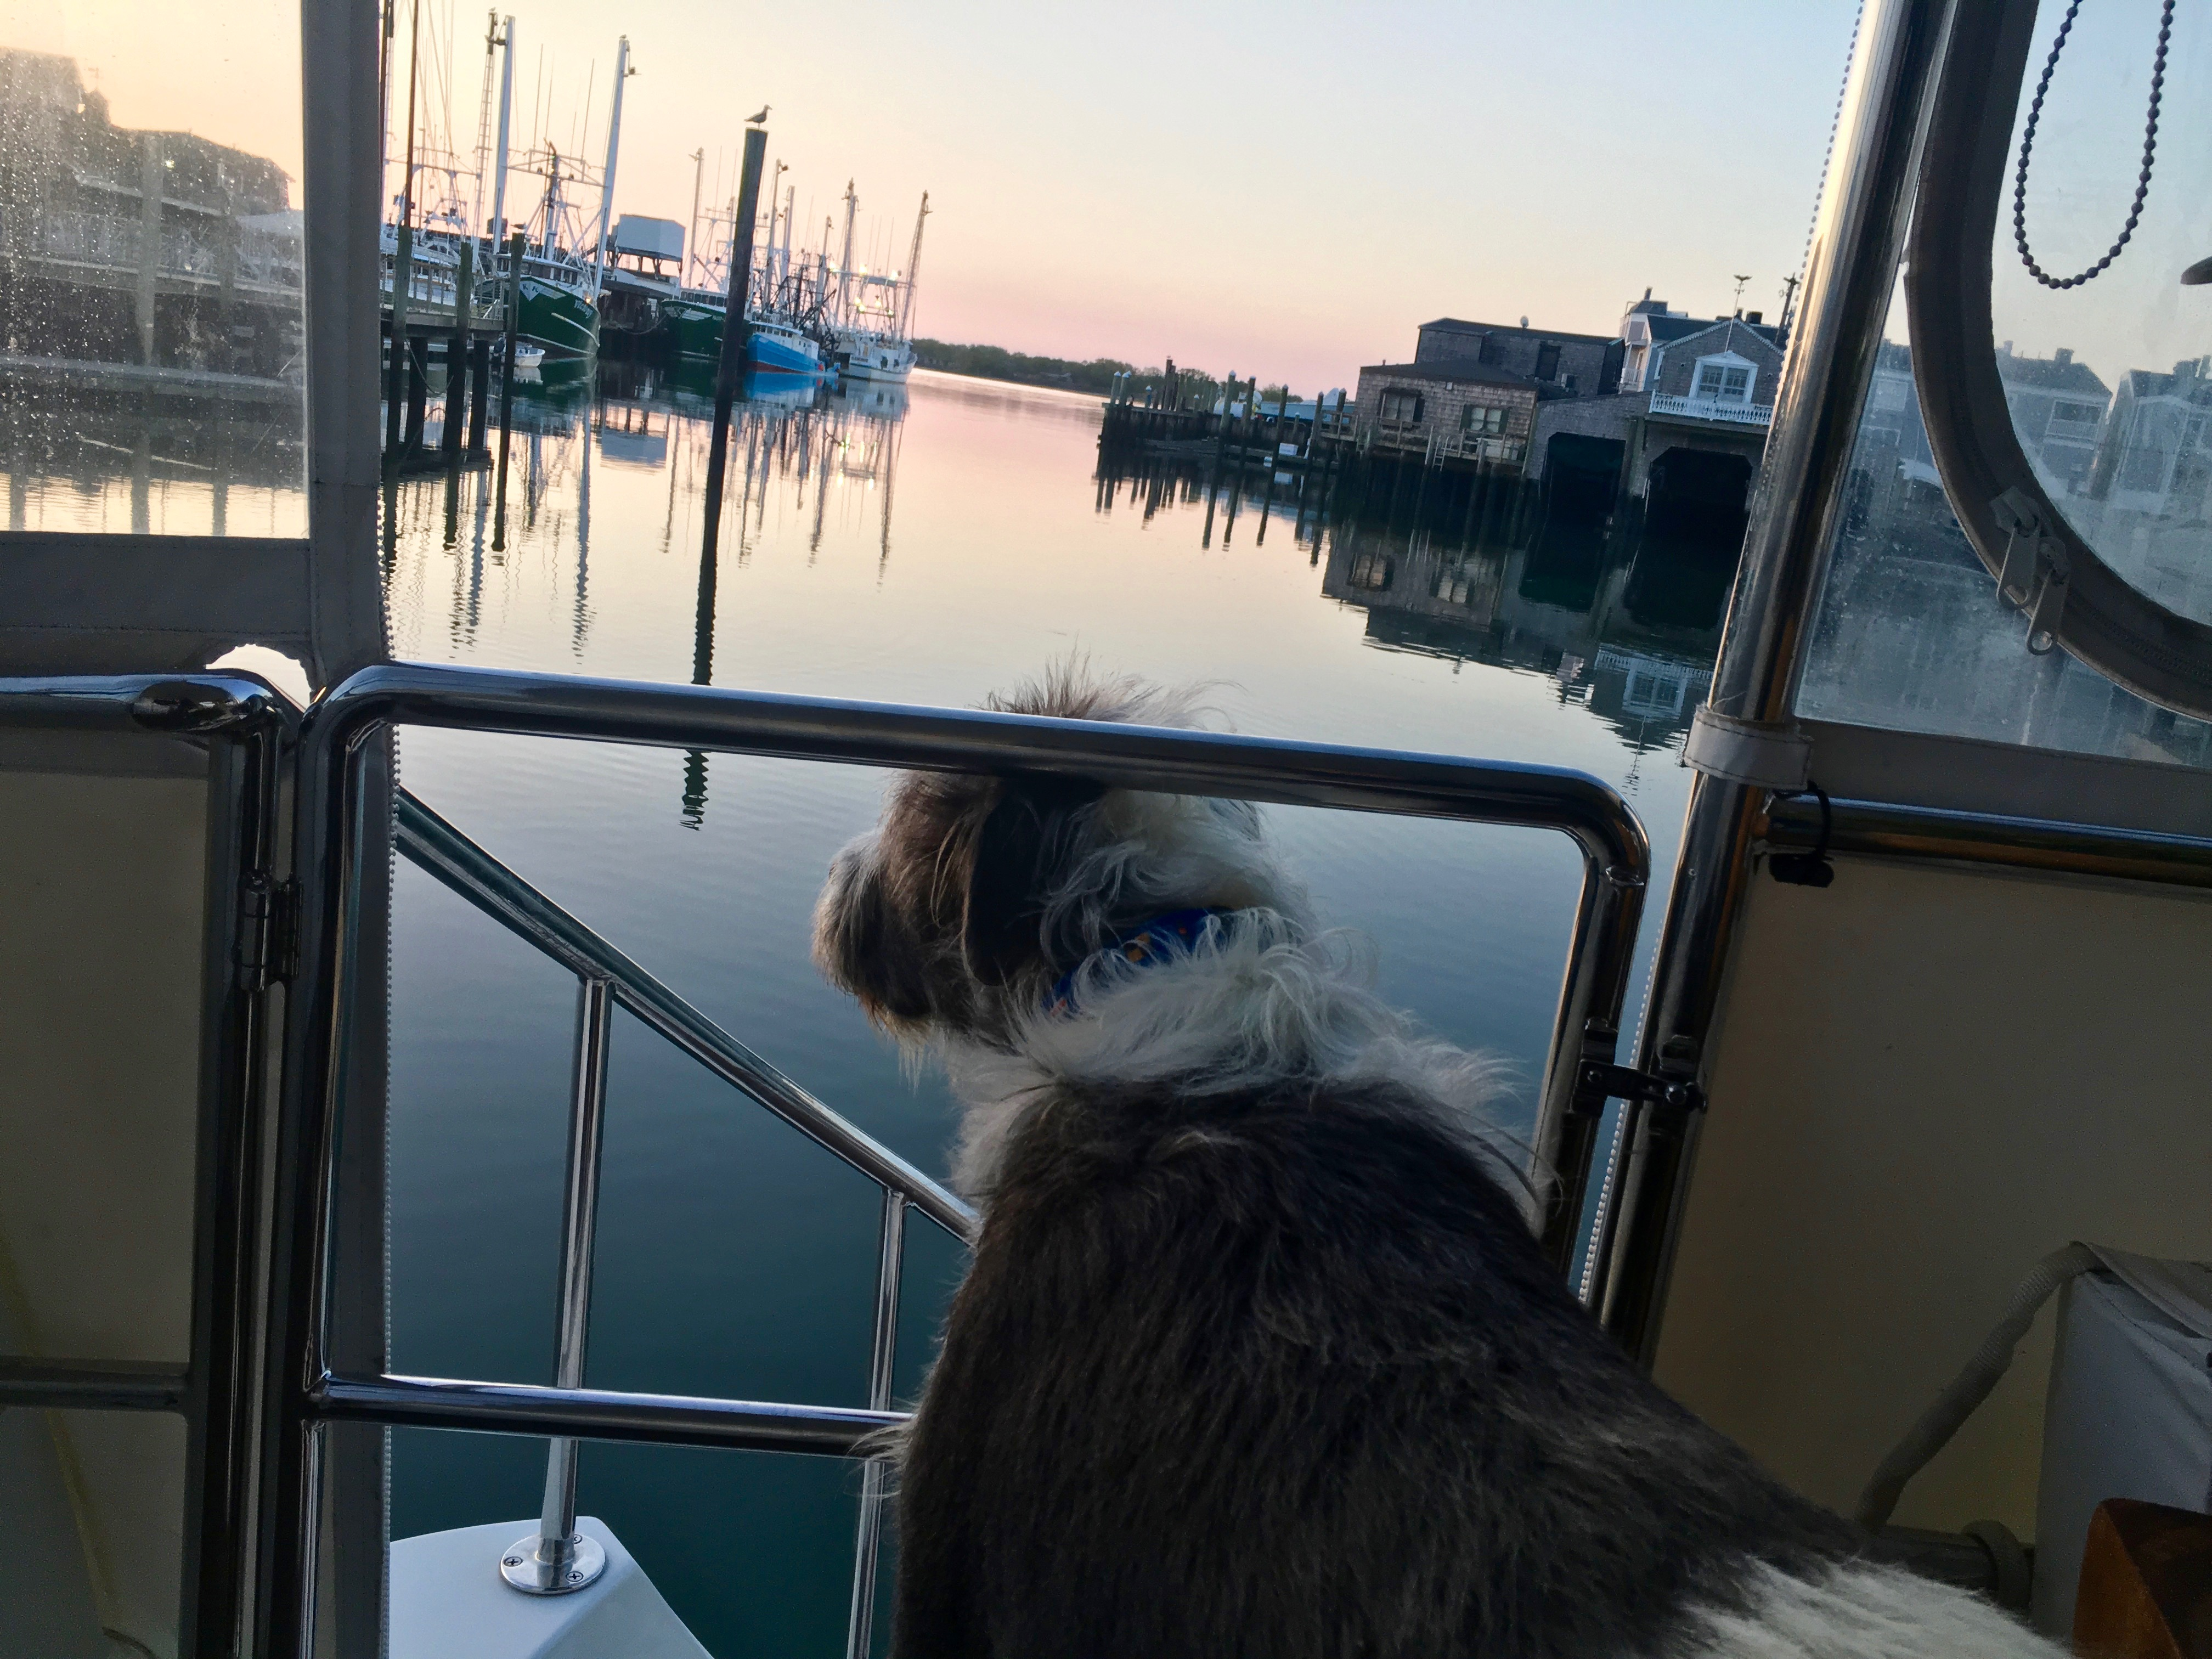 Northbound '19 – Travel Day 25: Cape May, NJ To Jersey City, NJ